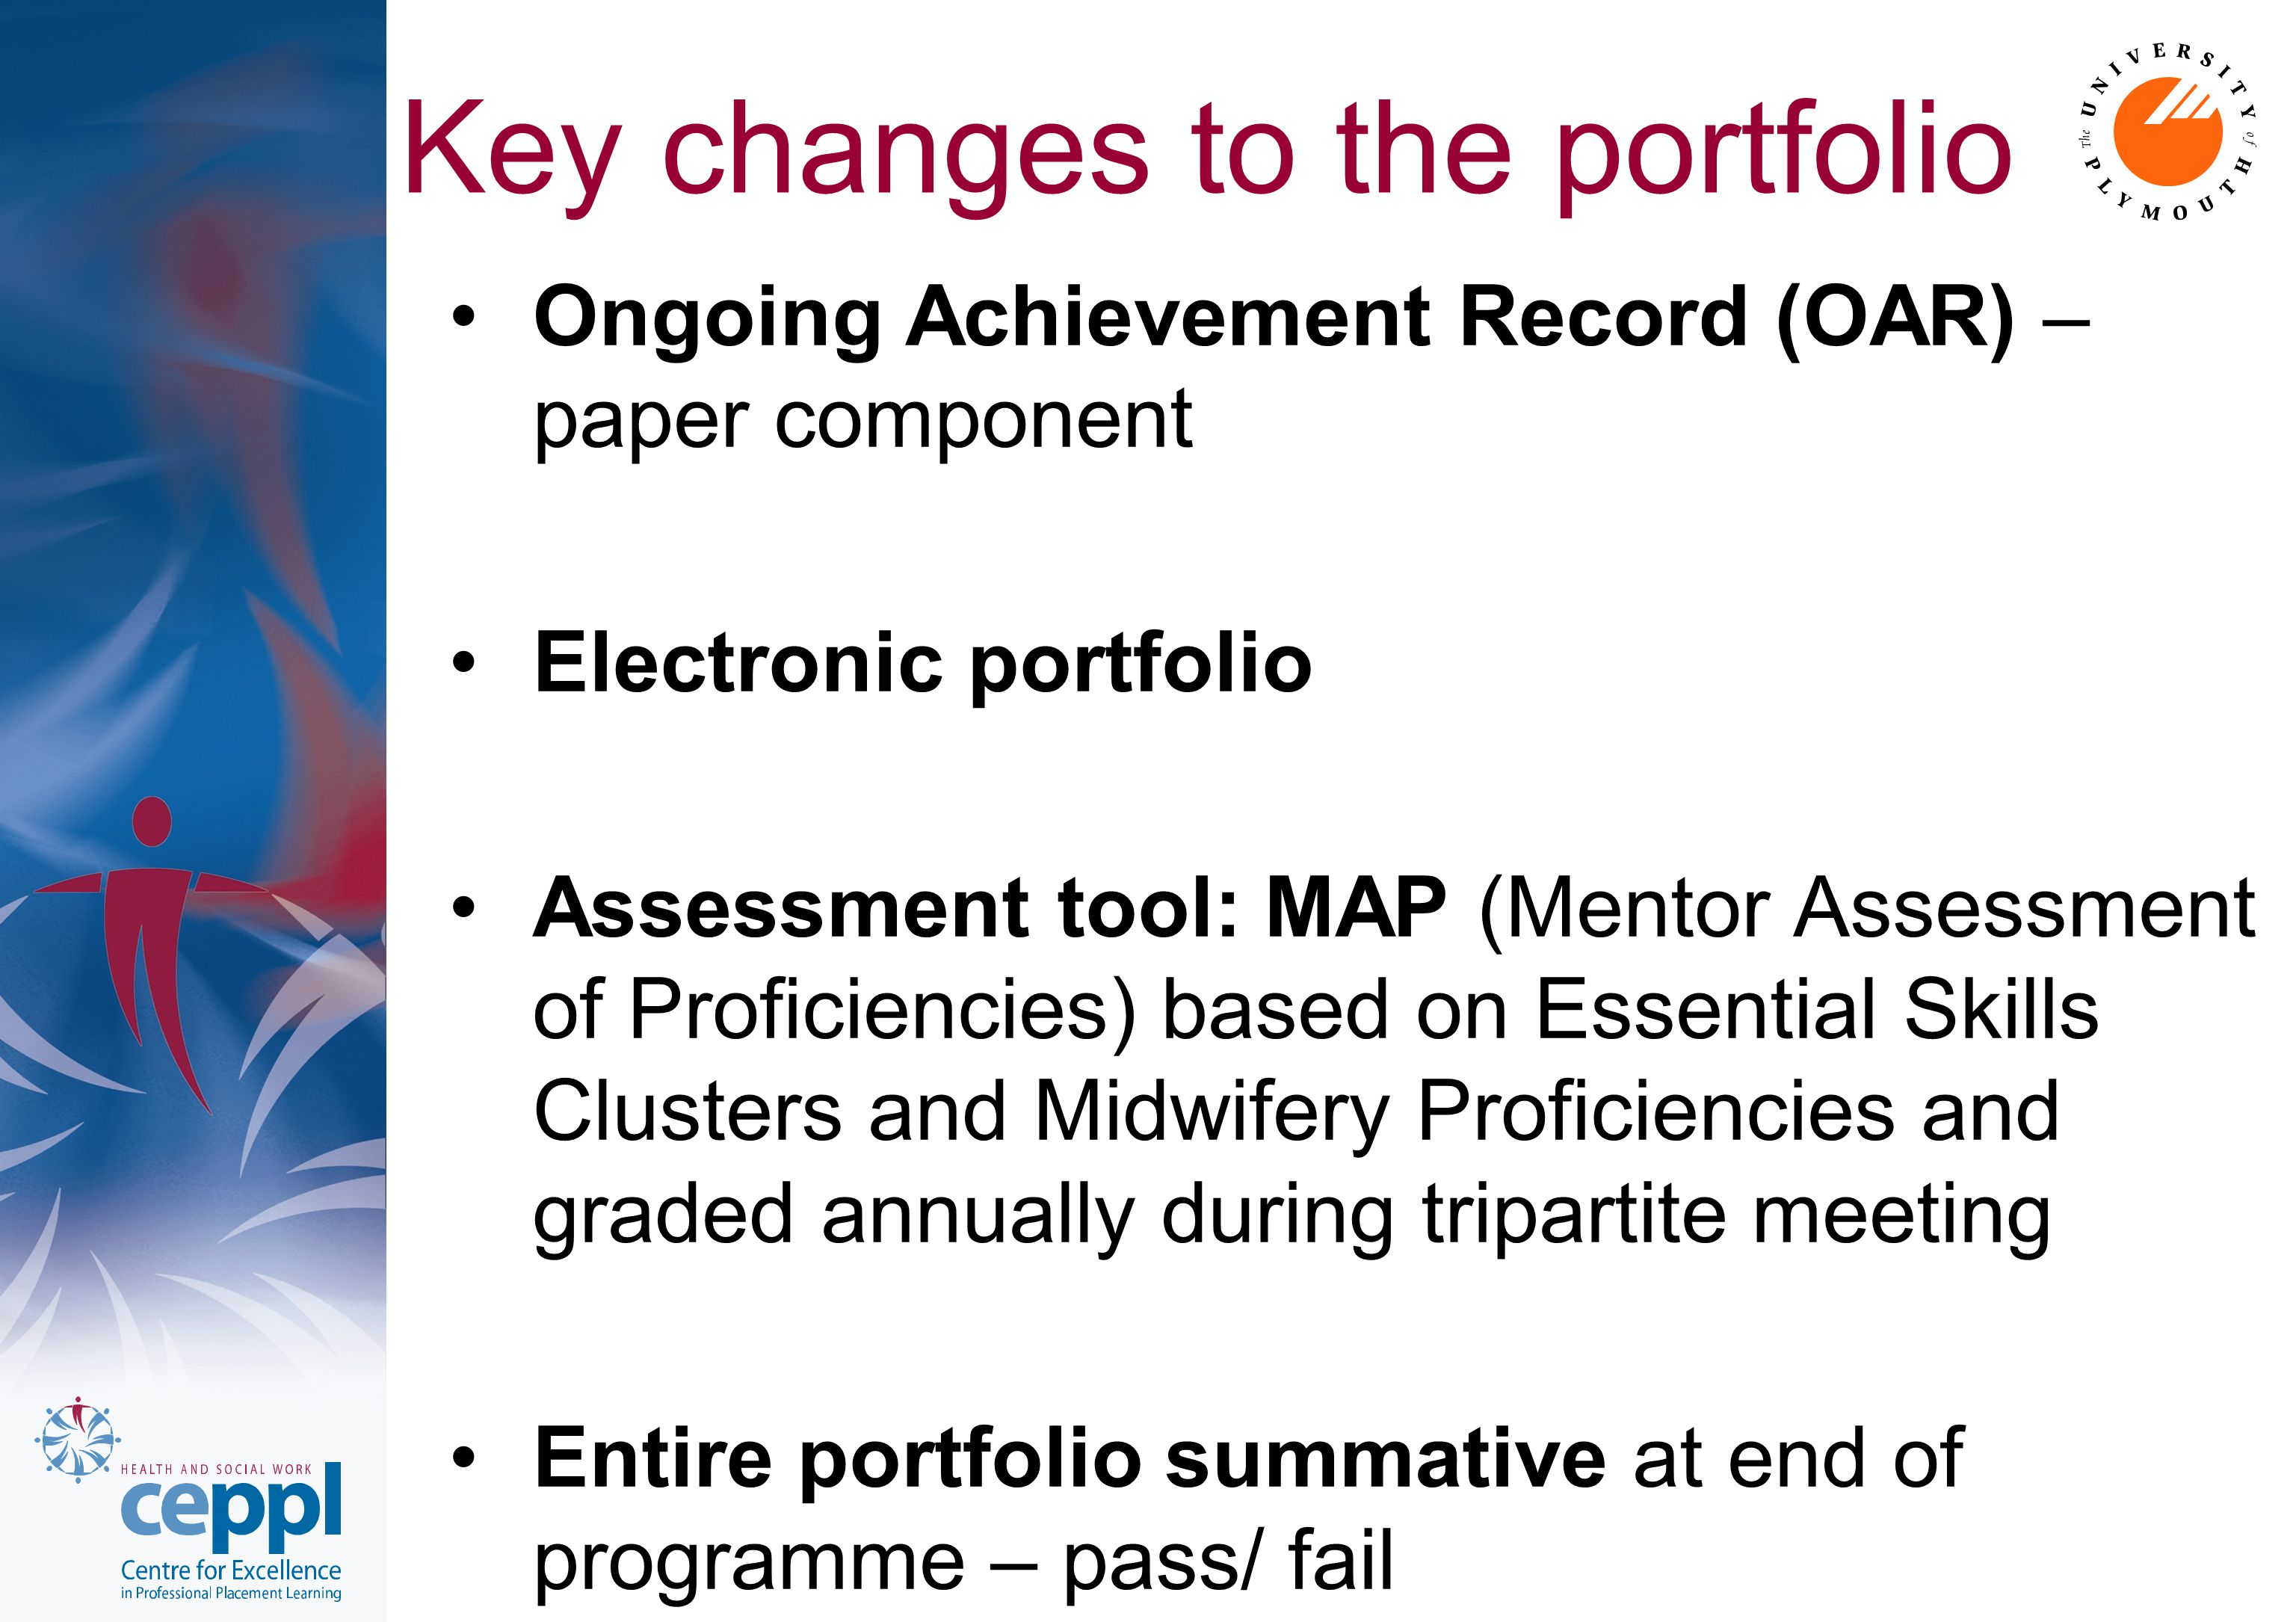 Key changes to the portfolio Ongoing Achievement Record (OAR) – paper component Electronic portfolio Assessment tool: MAP (Mentor Assessment of Proficiencies) based on Essential Skills Clusters and Midwifery Proficiencies and graded annually during tripartite meeting Entire portfolio summative at end of programme – pass/ fail